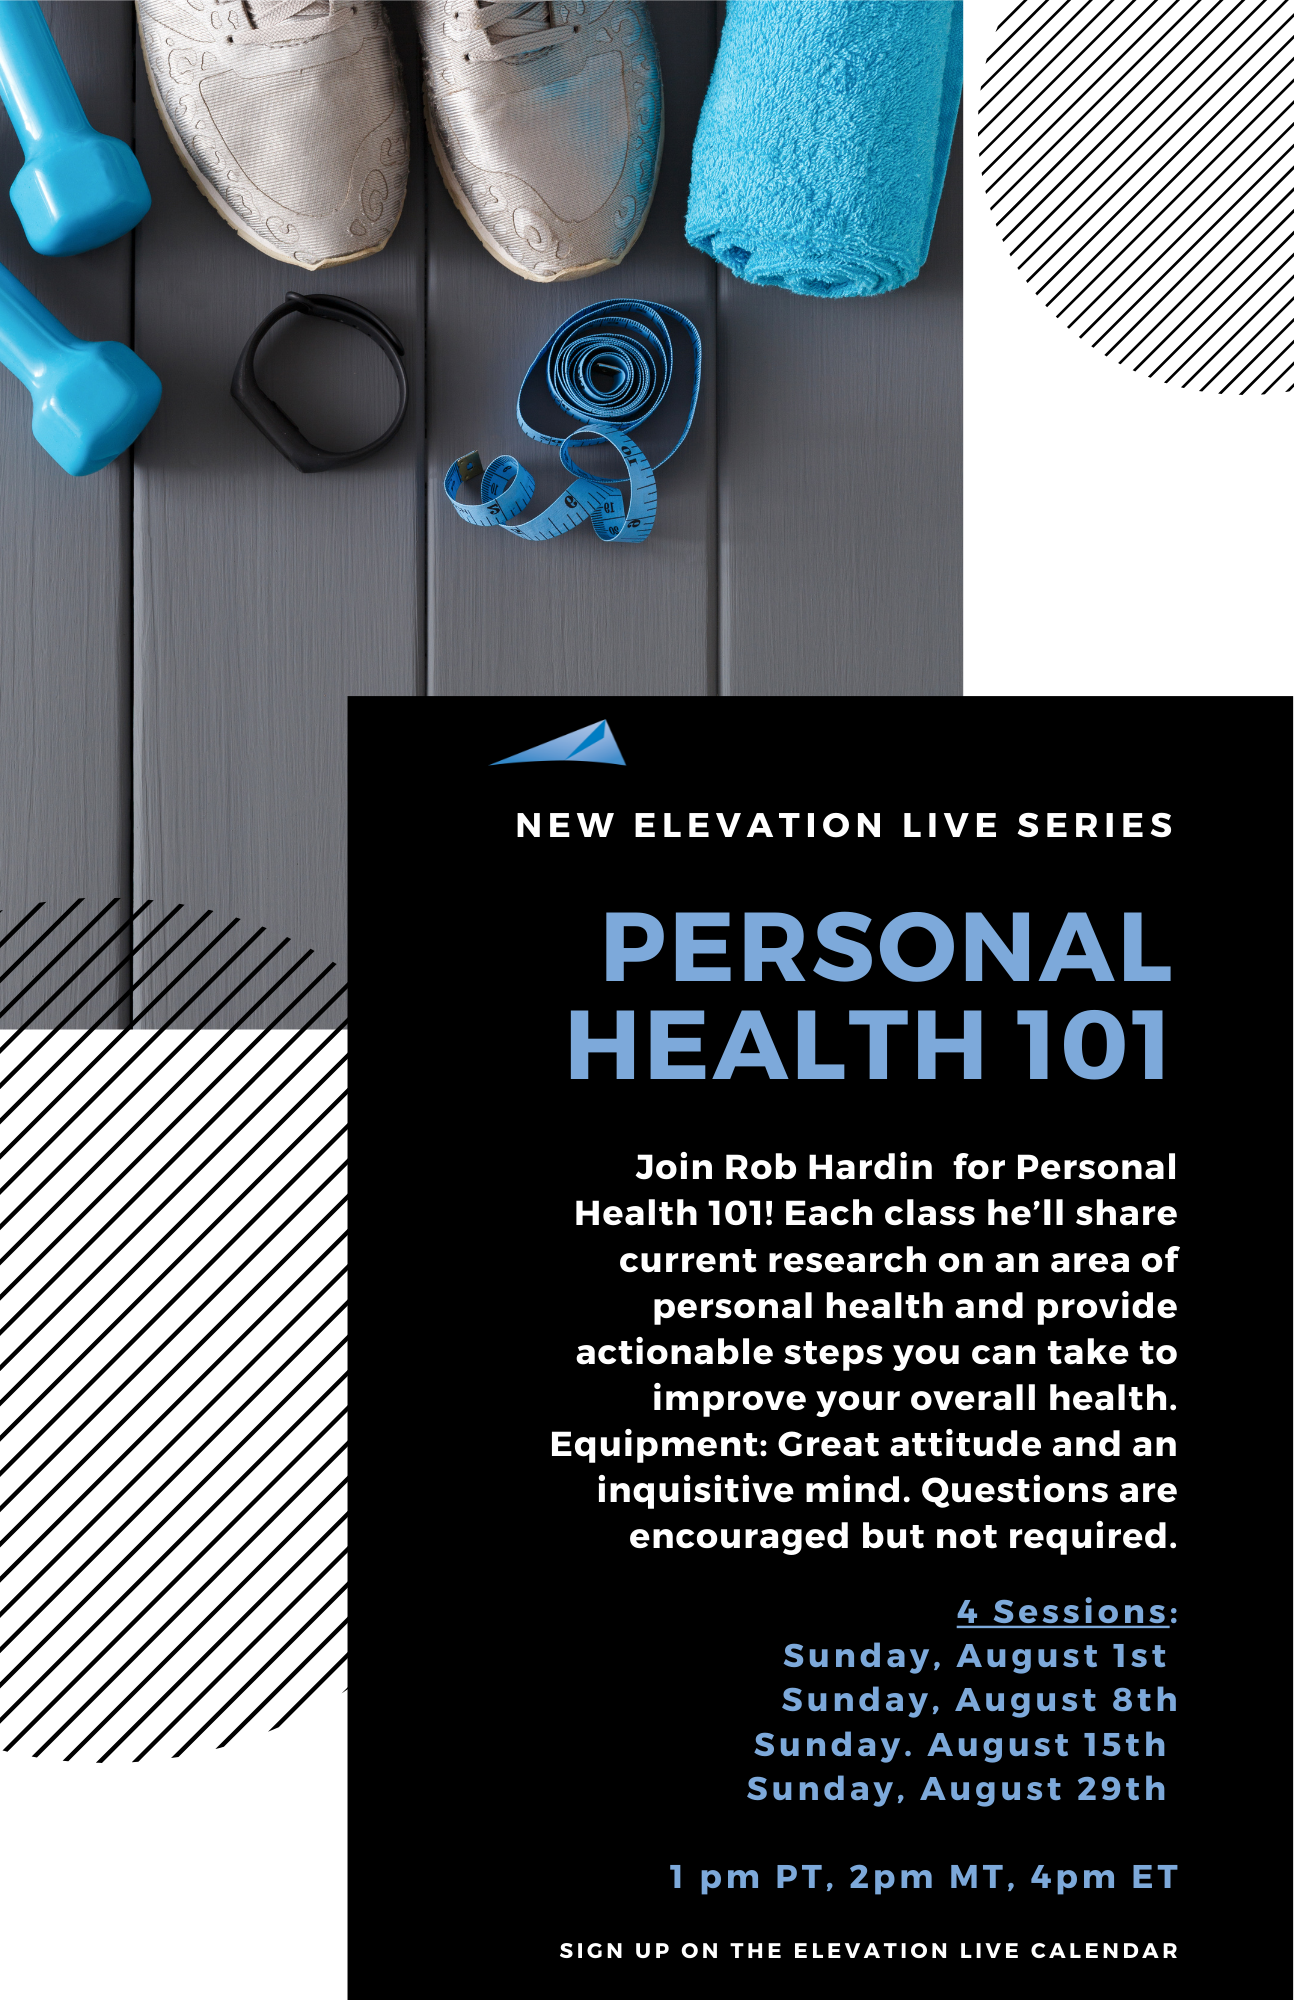 August-New-Elevation-Live-Series-Personal-Health-101